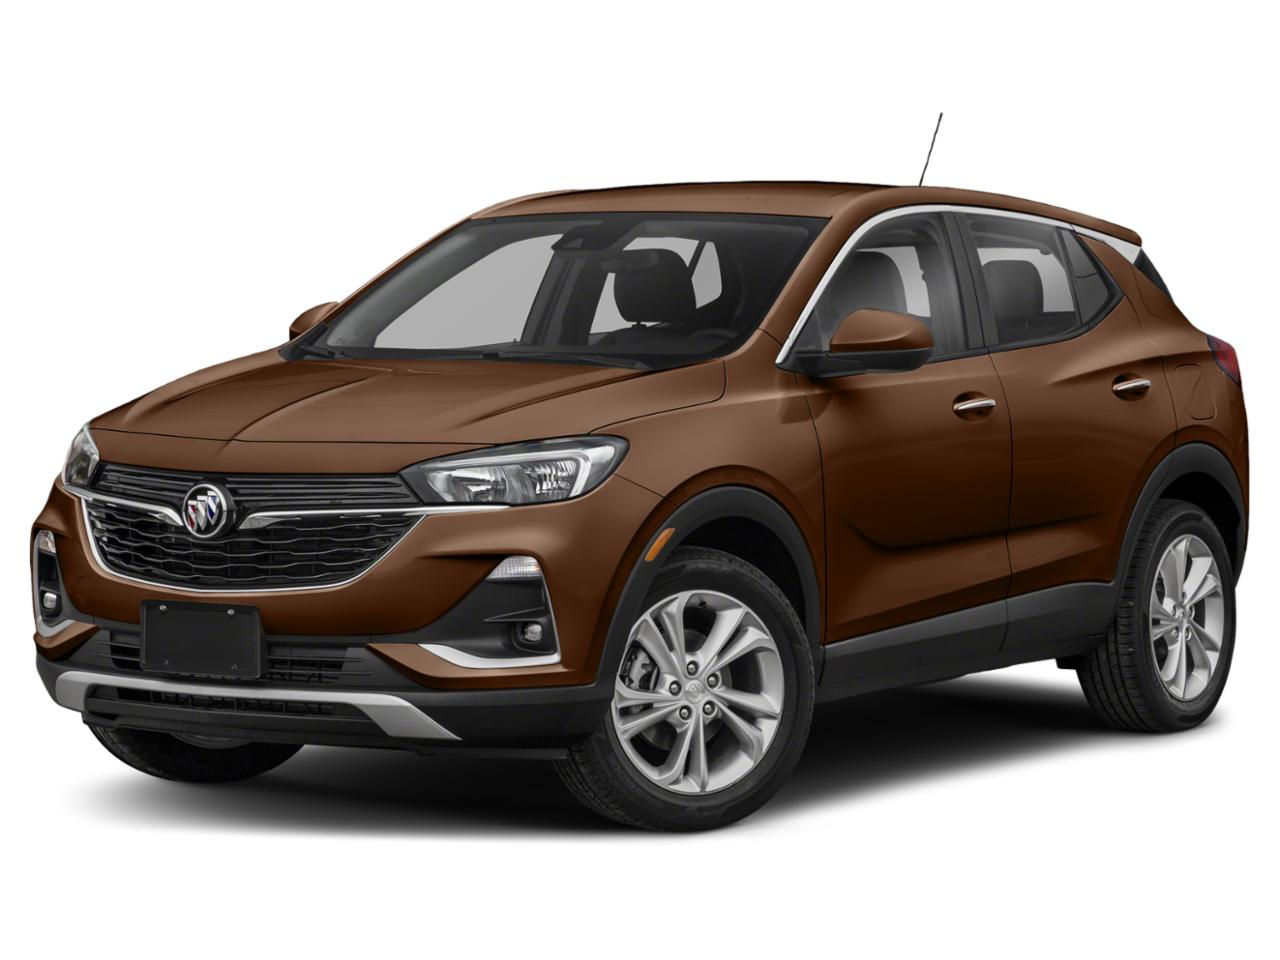 New 2020 Buick Encore Gx For Sale At Griffin Buick Gmc New 2022 Buick Encore Oil Capacity, Owner's Manual, Color Options